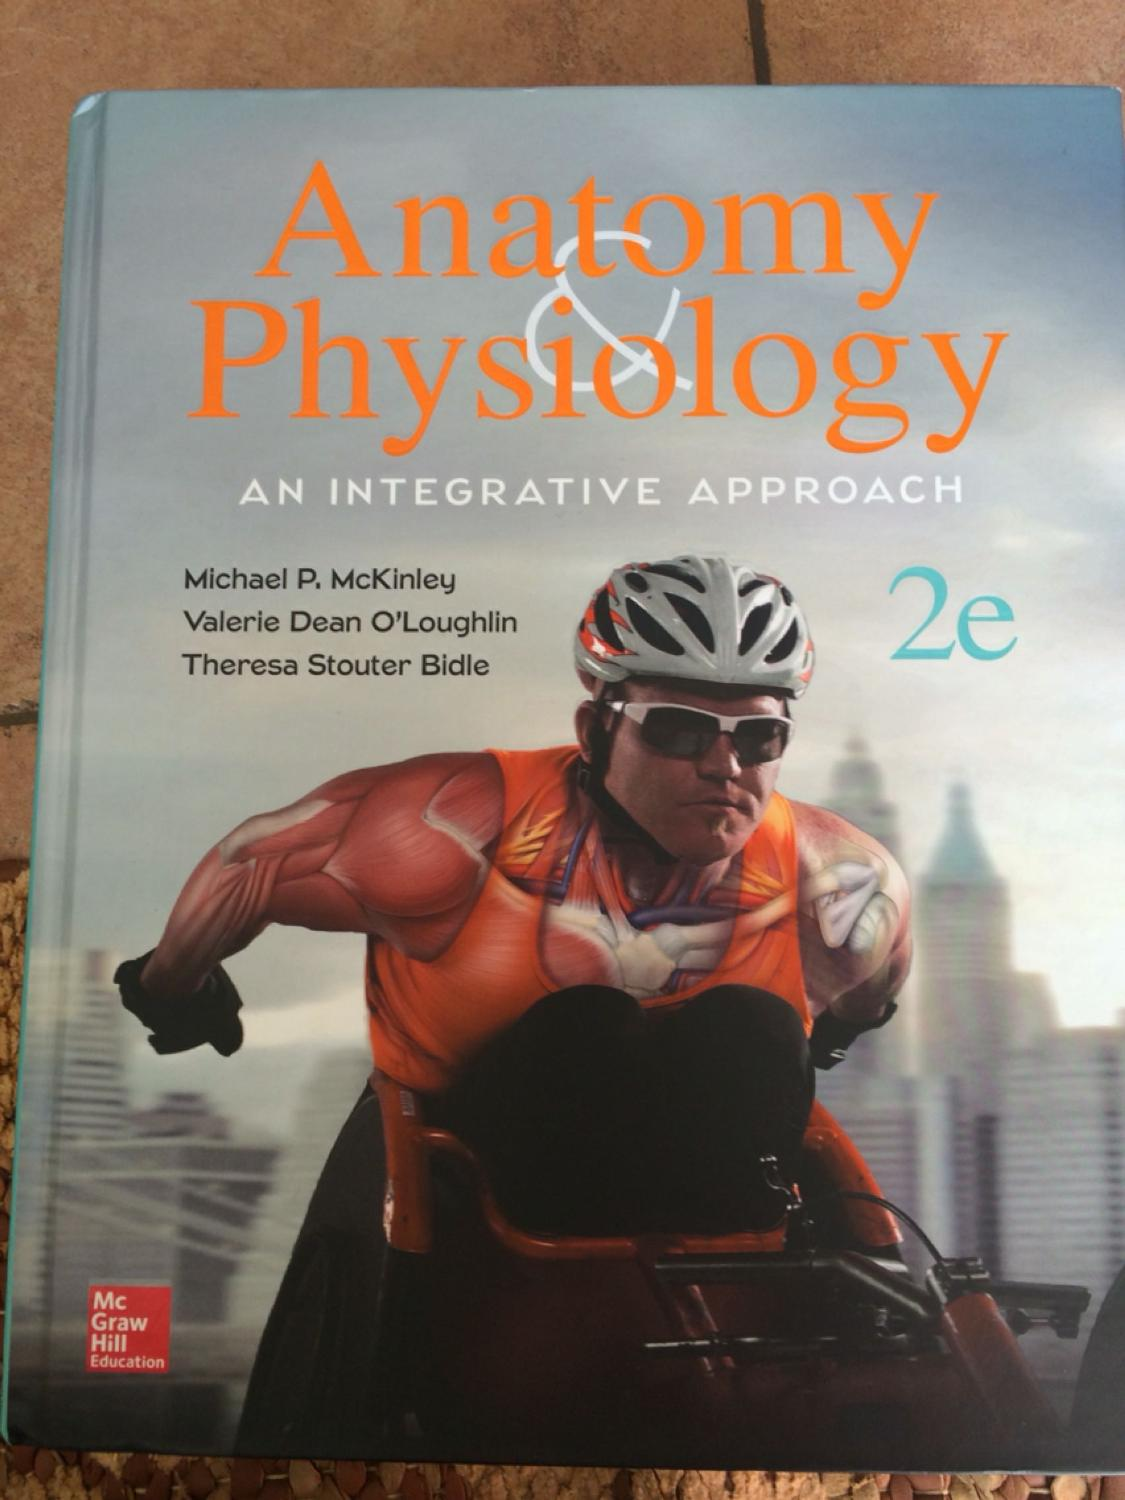 McGraw Hill Anatomy & Physiology textbook!